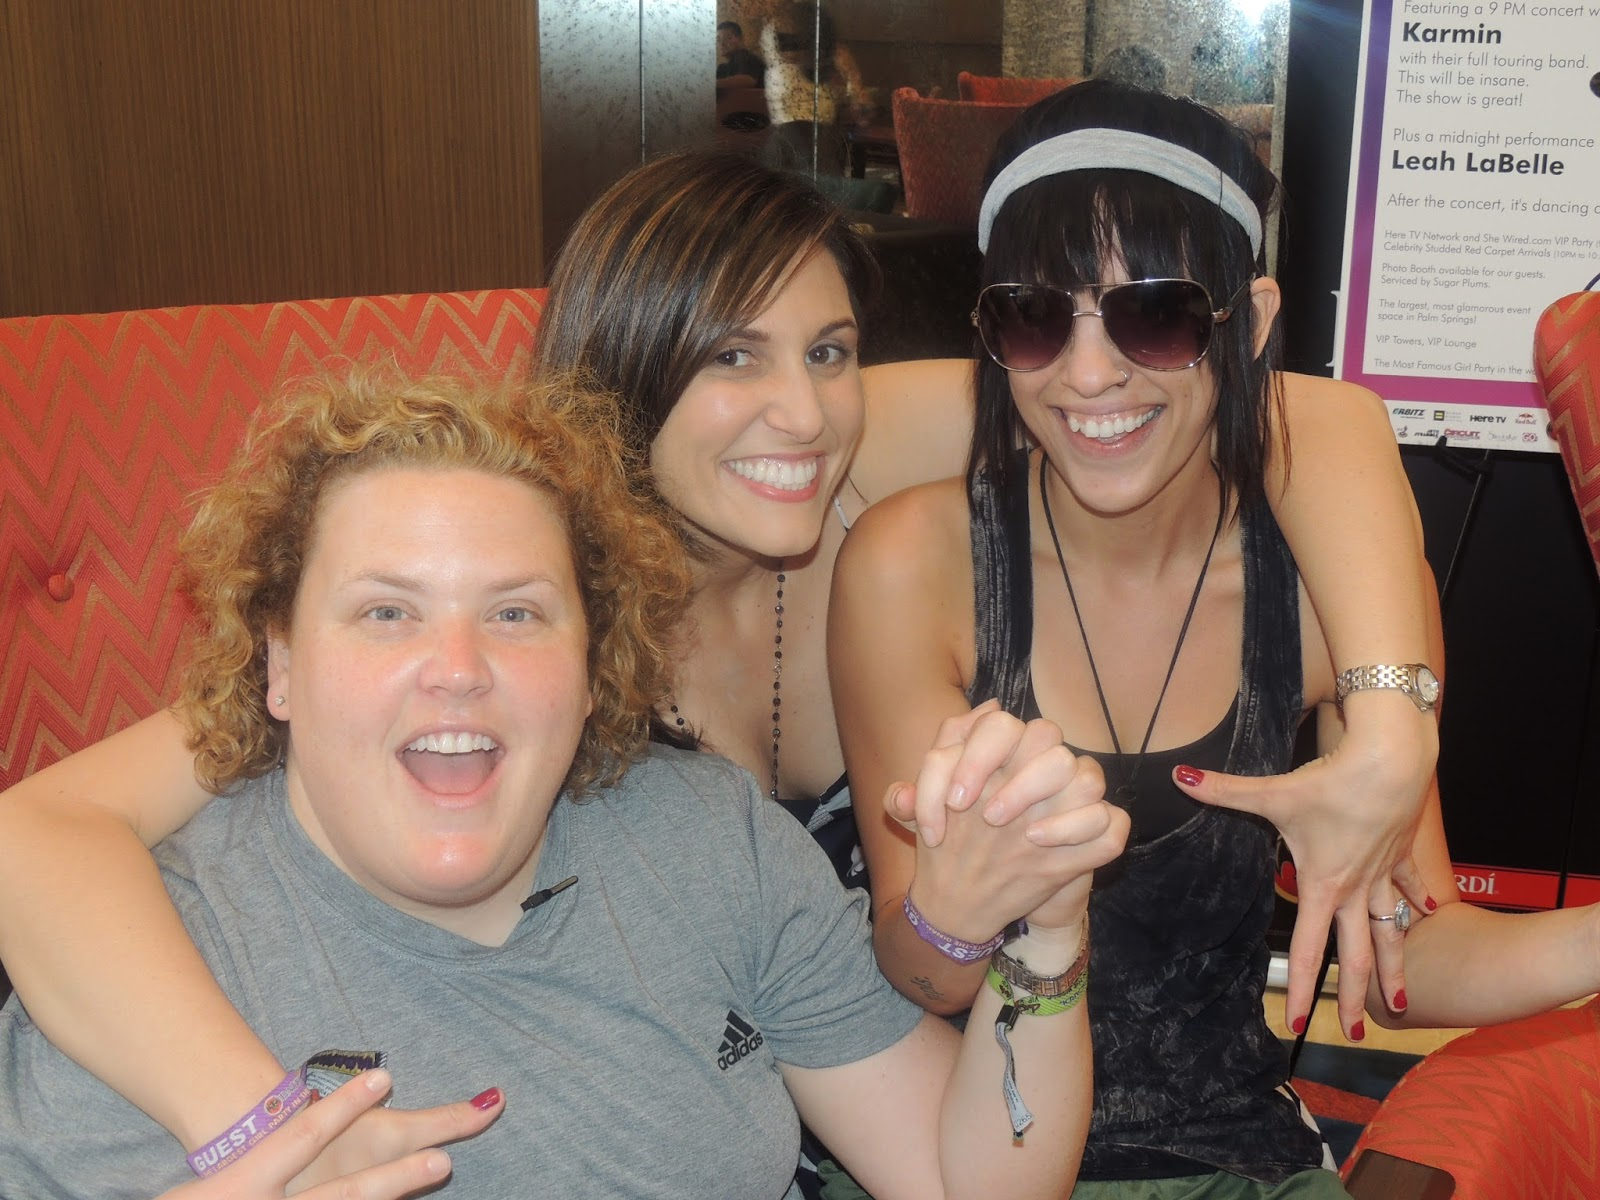 palm springs lesbian dating site Gay palm springs guide, meet gay and lesbian locals, find reviews of gay bars, clubs, hotels and things to do to help you plan your next gay vacation to palm springs.